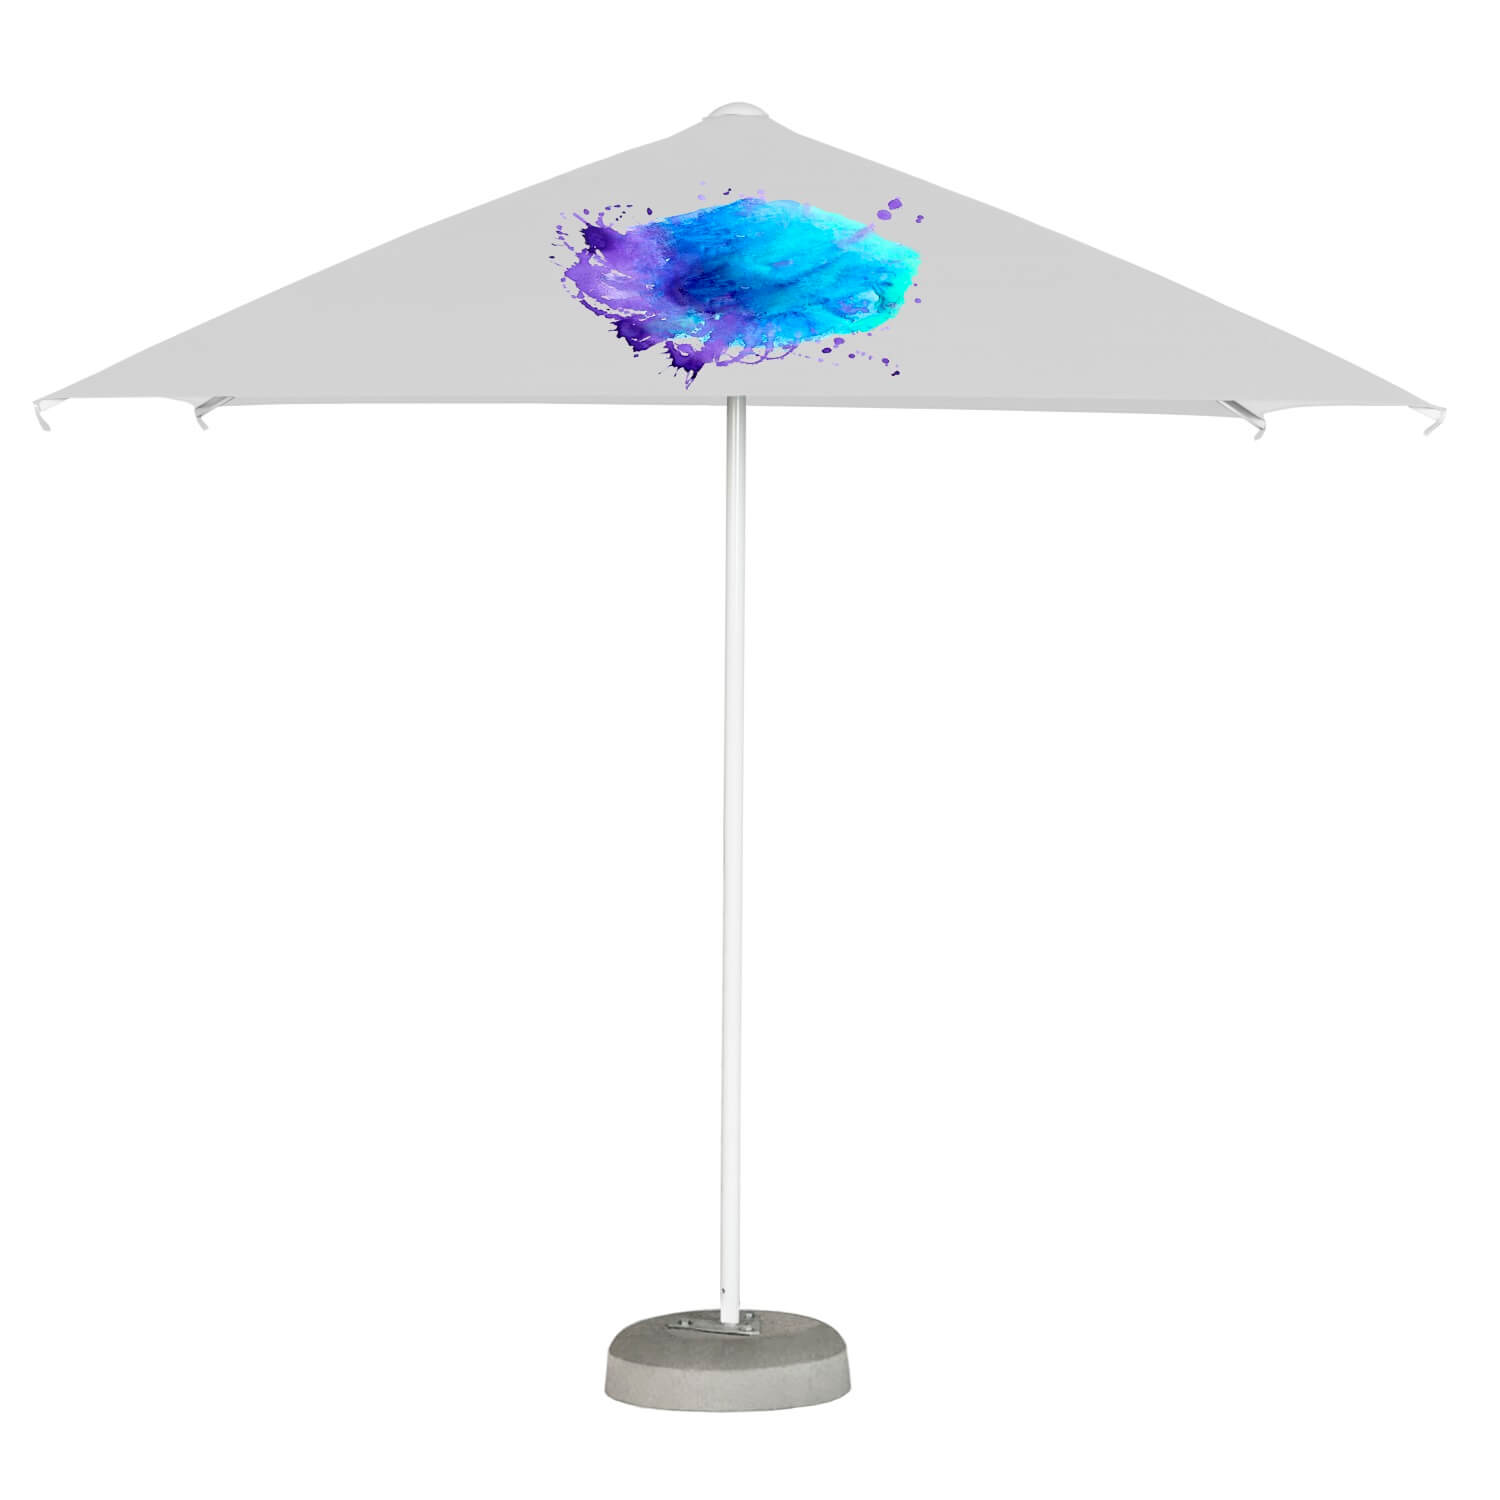 13. Easy Up Parasol Quadratisch 2,5m